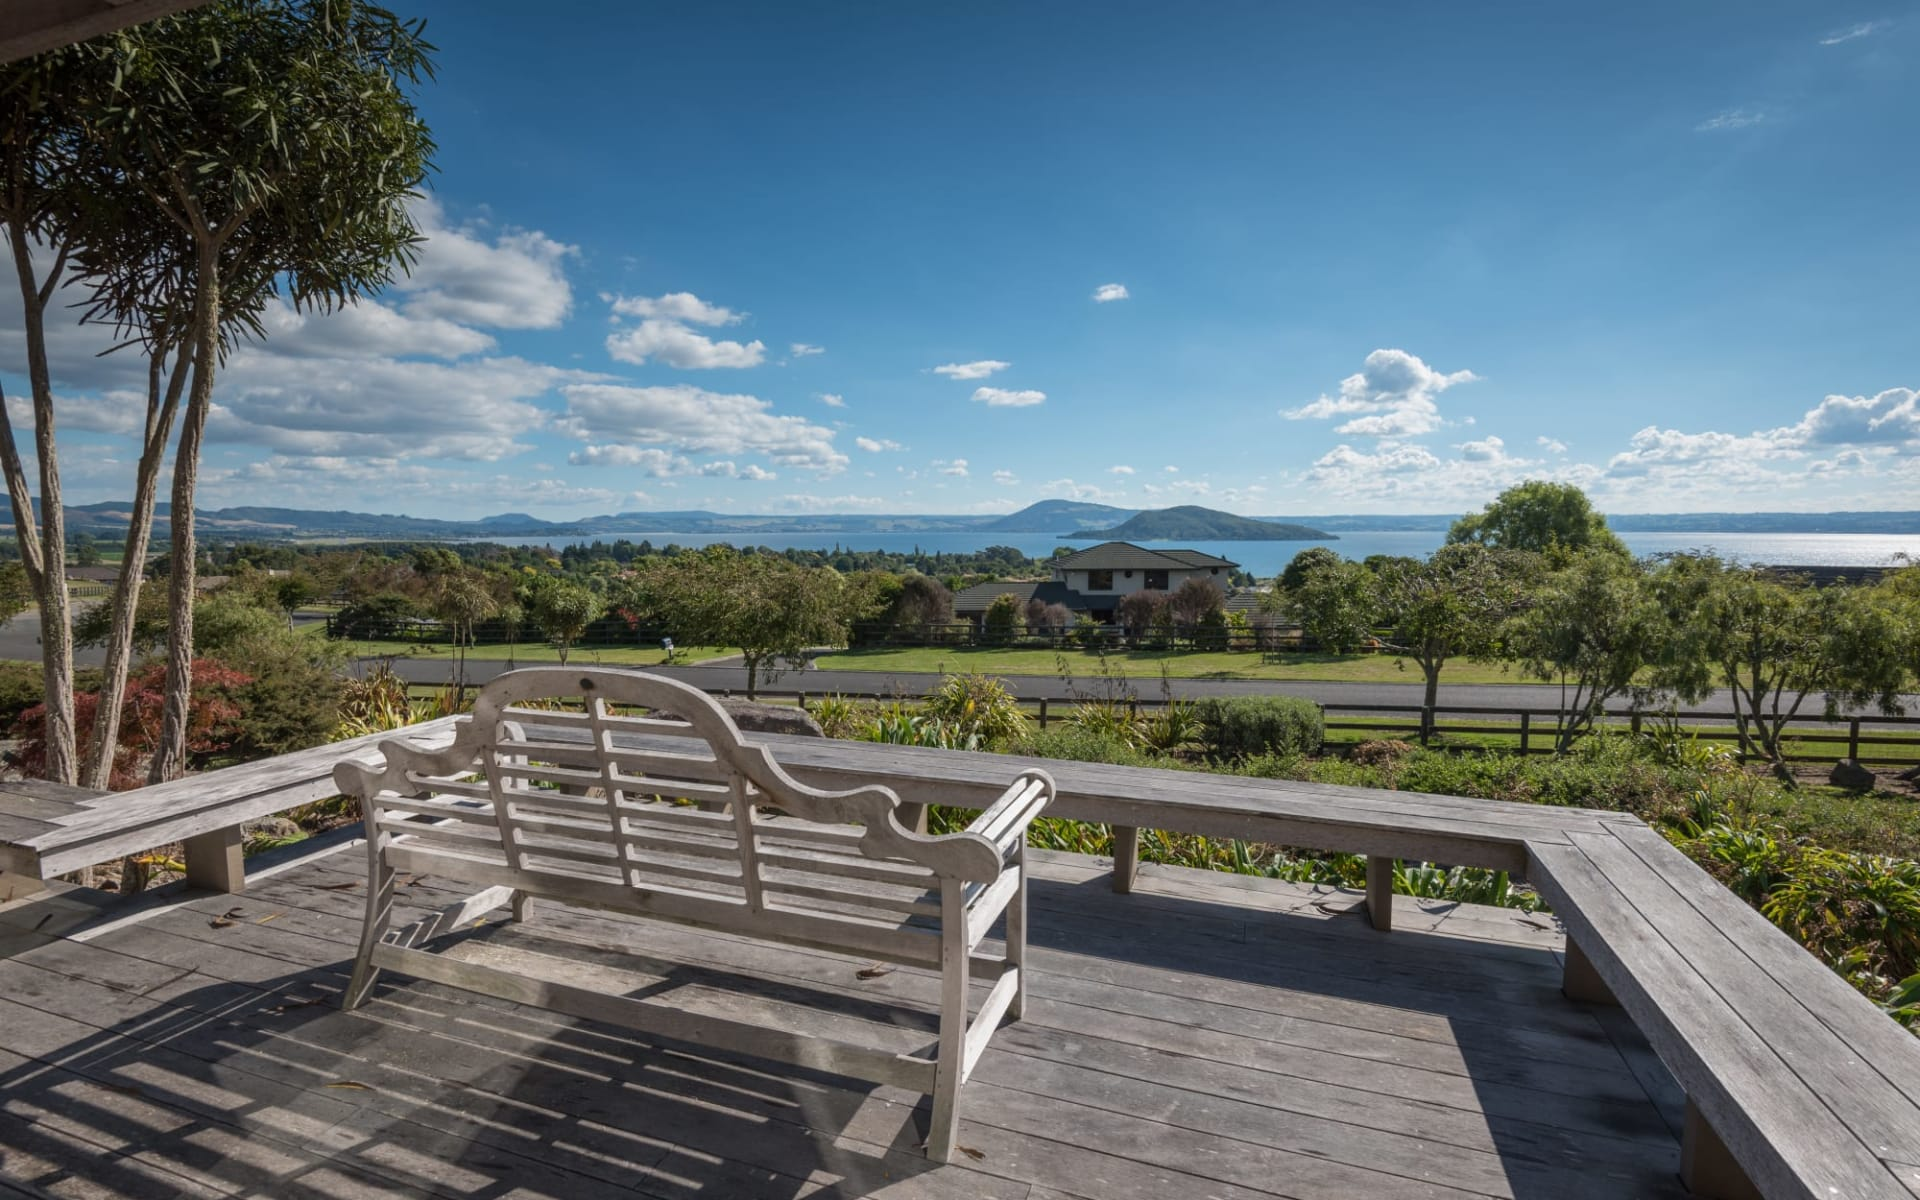 Flemington Lake View B&B in Rotorua:  Flemington - 2017-02-25 Fleminton Place #2_1985